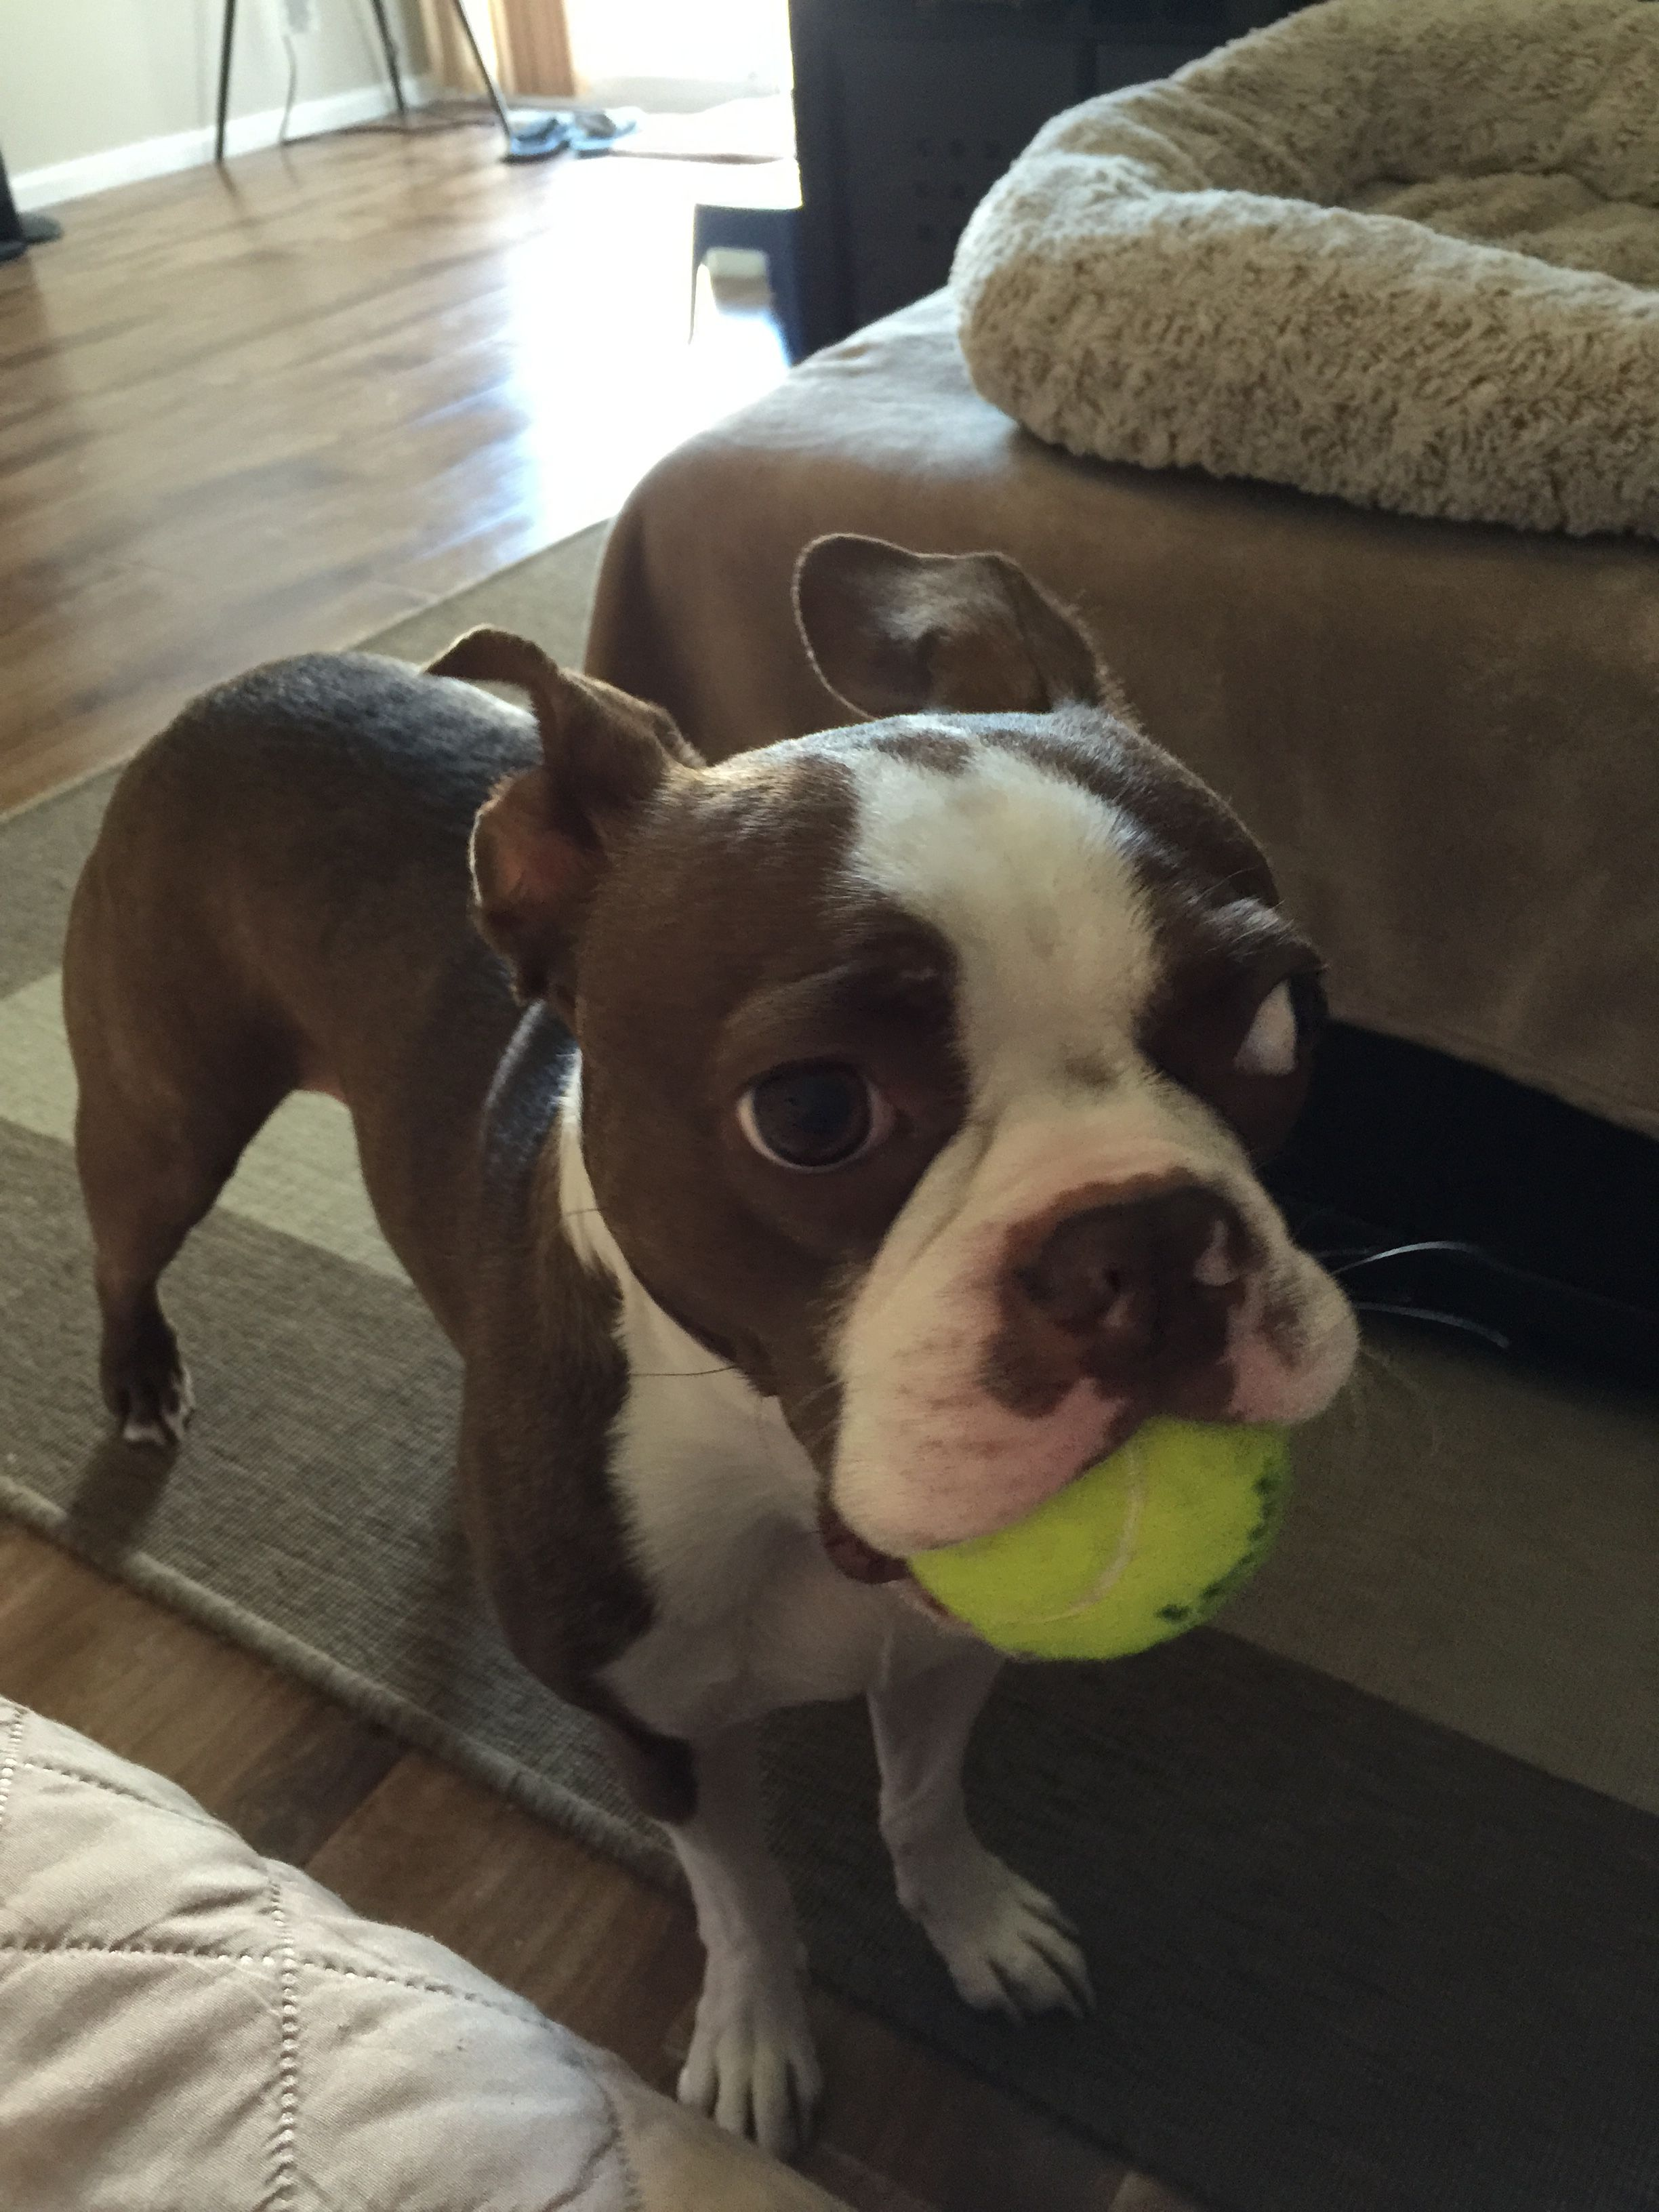 Pin By Aj Bustamante On It S All About Family Boston Terrier